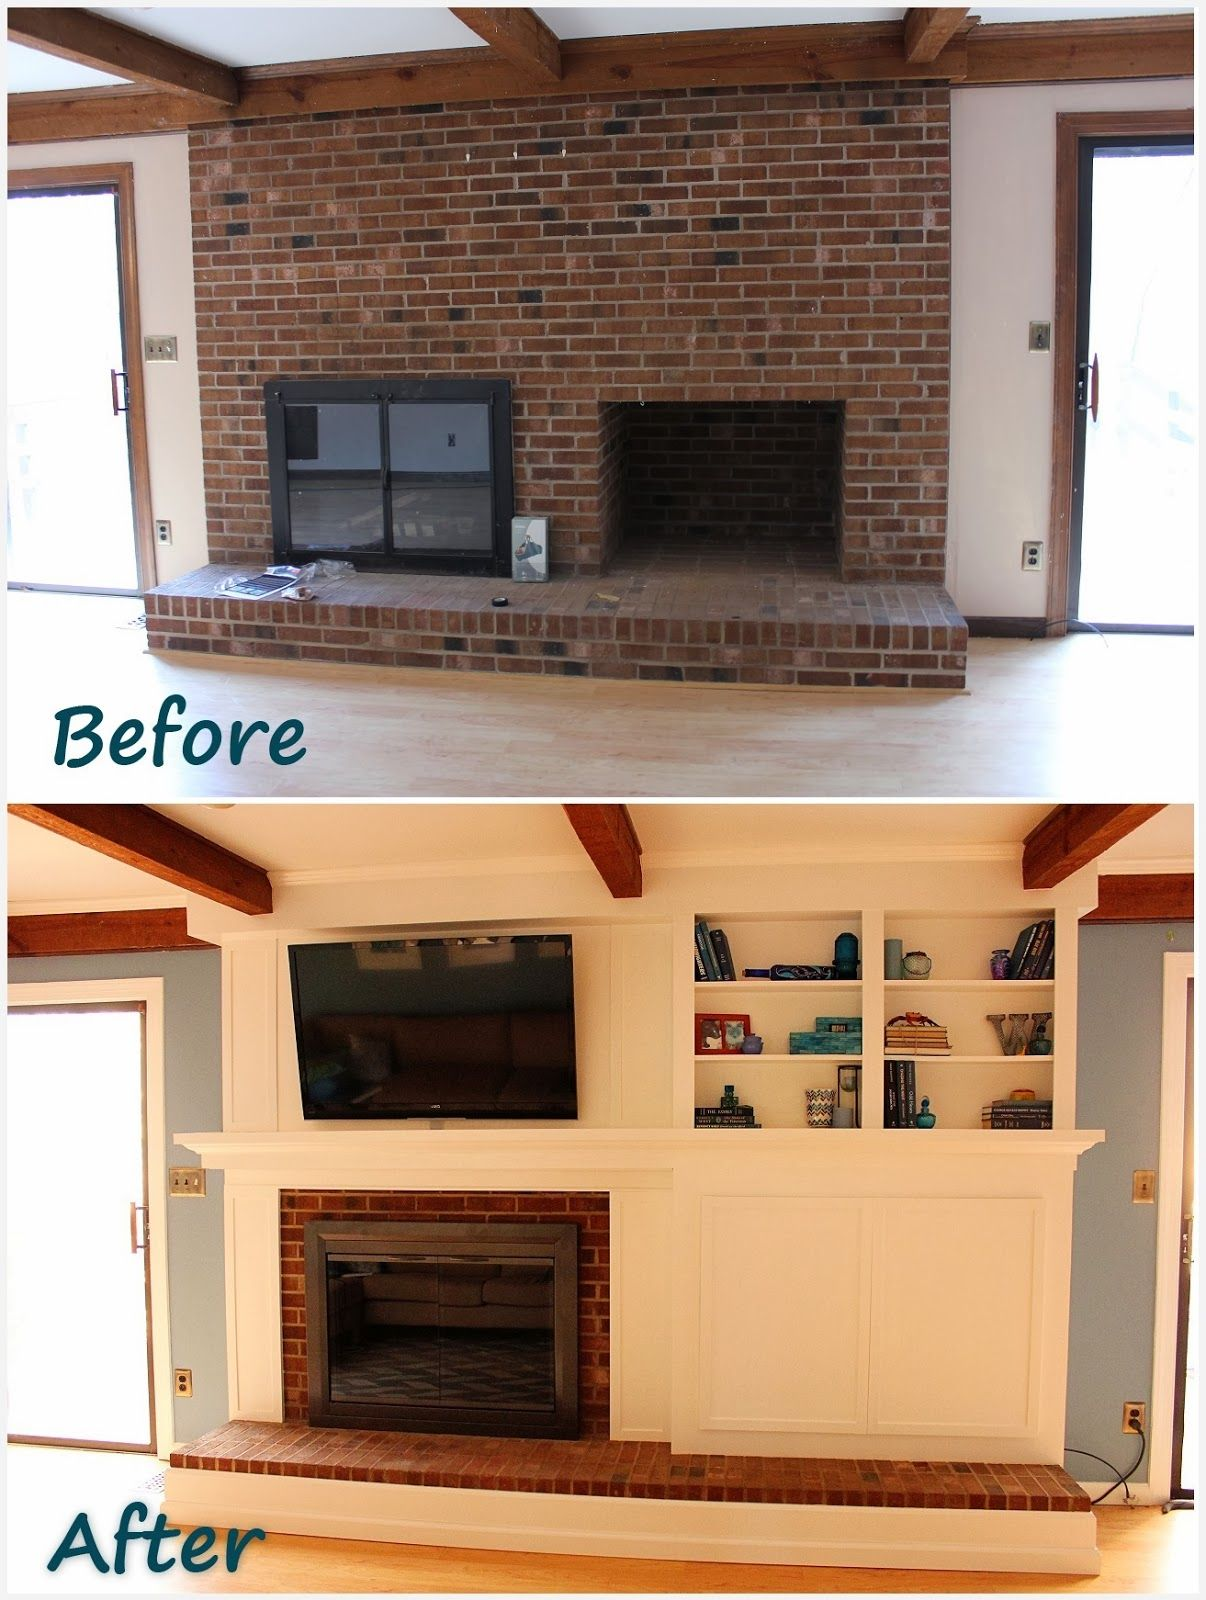 Update Old Brick Fireplace Fireplace Remodel Diy A Fireplace Facade To Cover An Old Brick